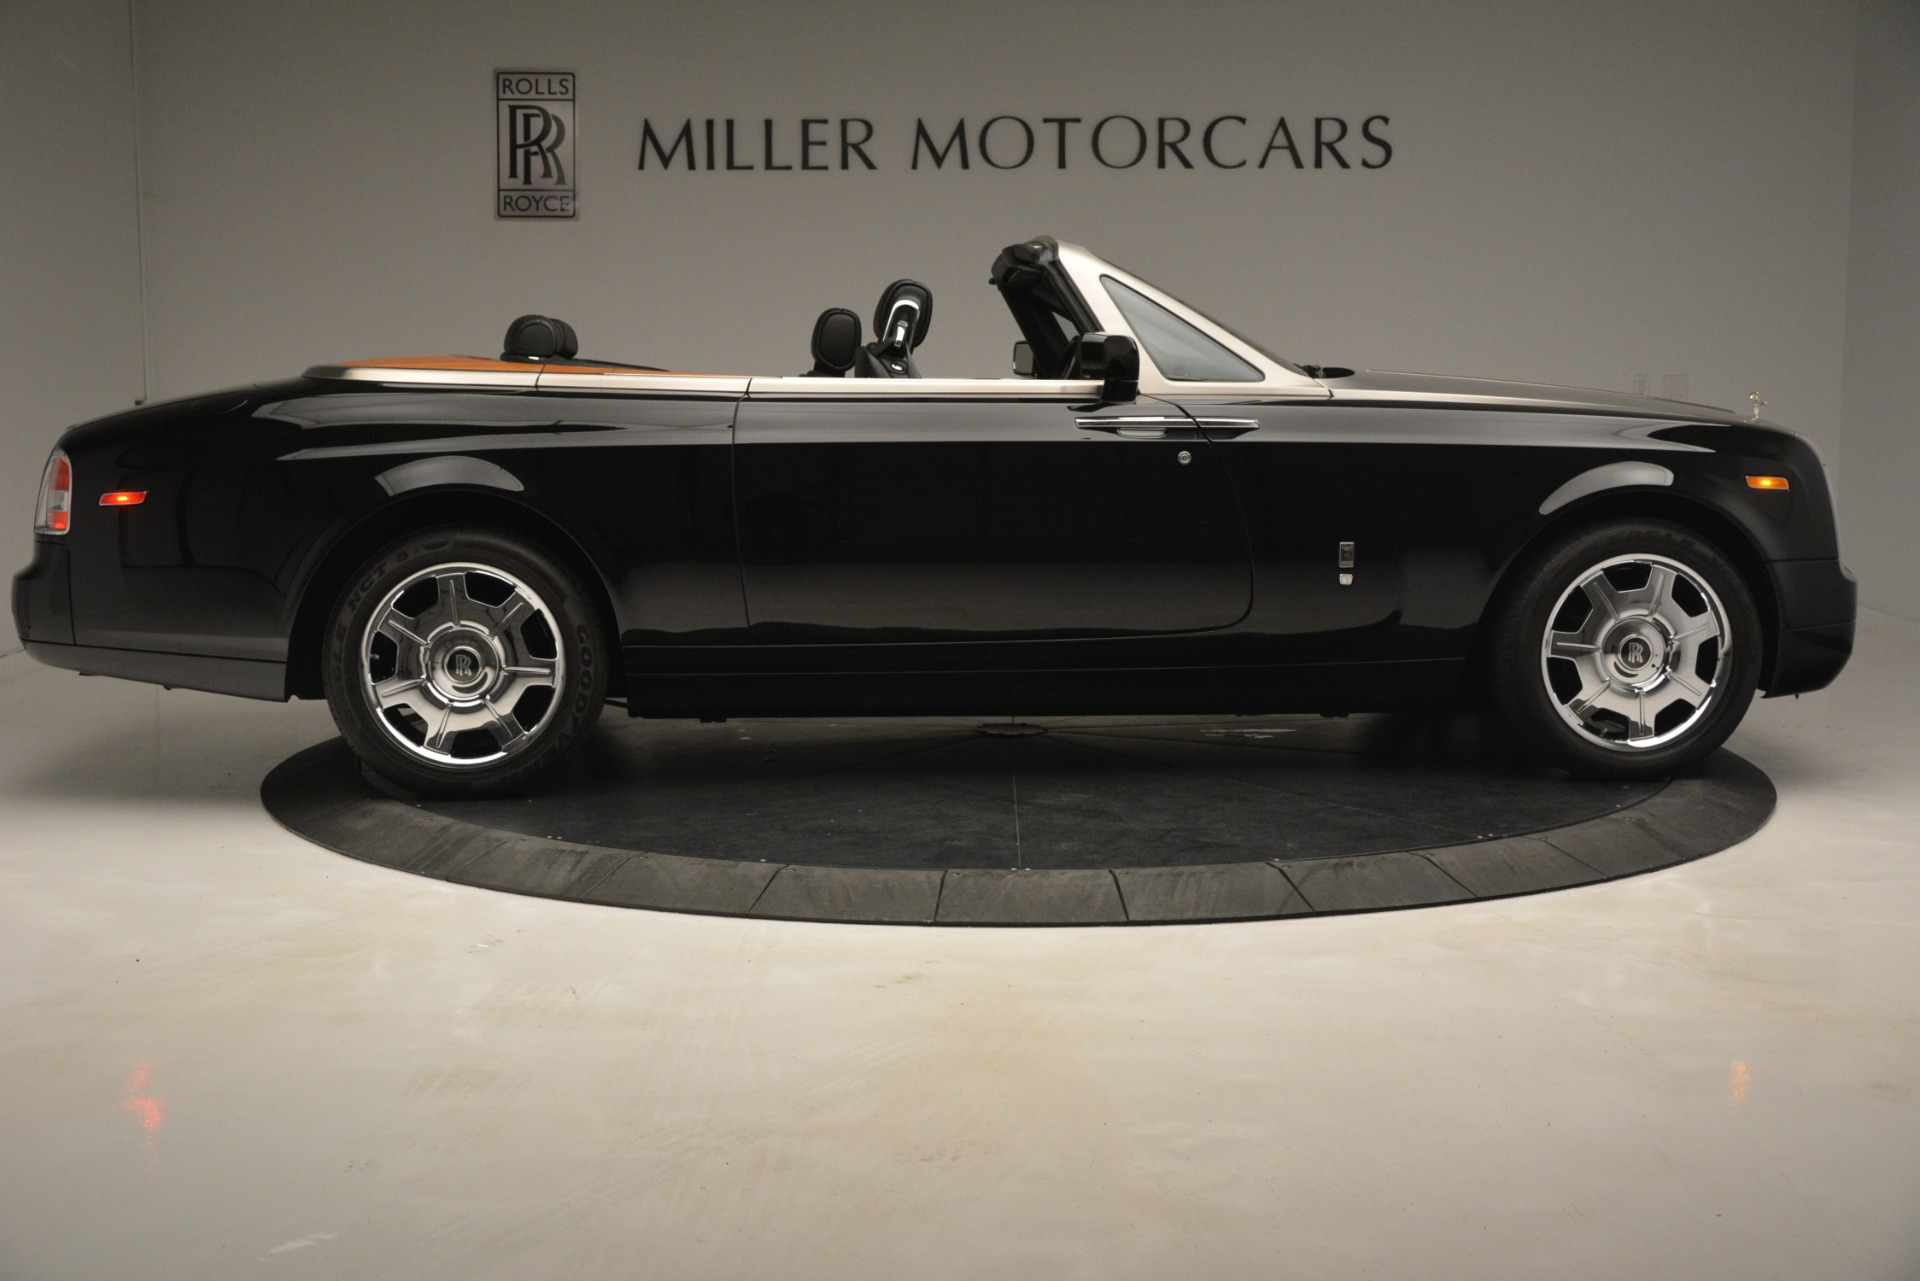 Used 2008 Rolls-Royce Phantom Drophead Coupe  For Sale In Greenwich, CT 3000_p13